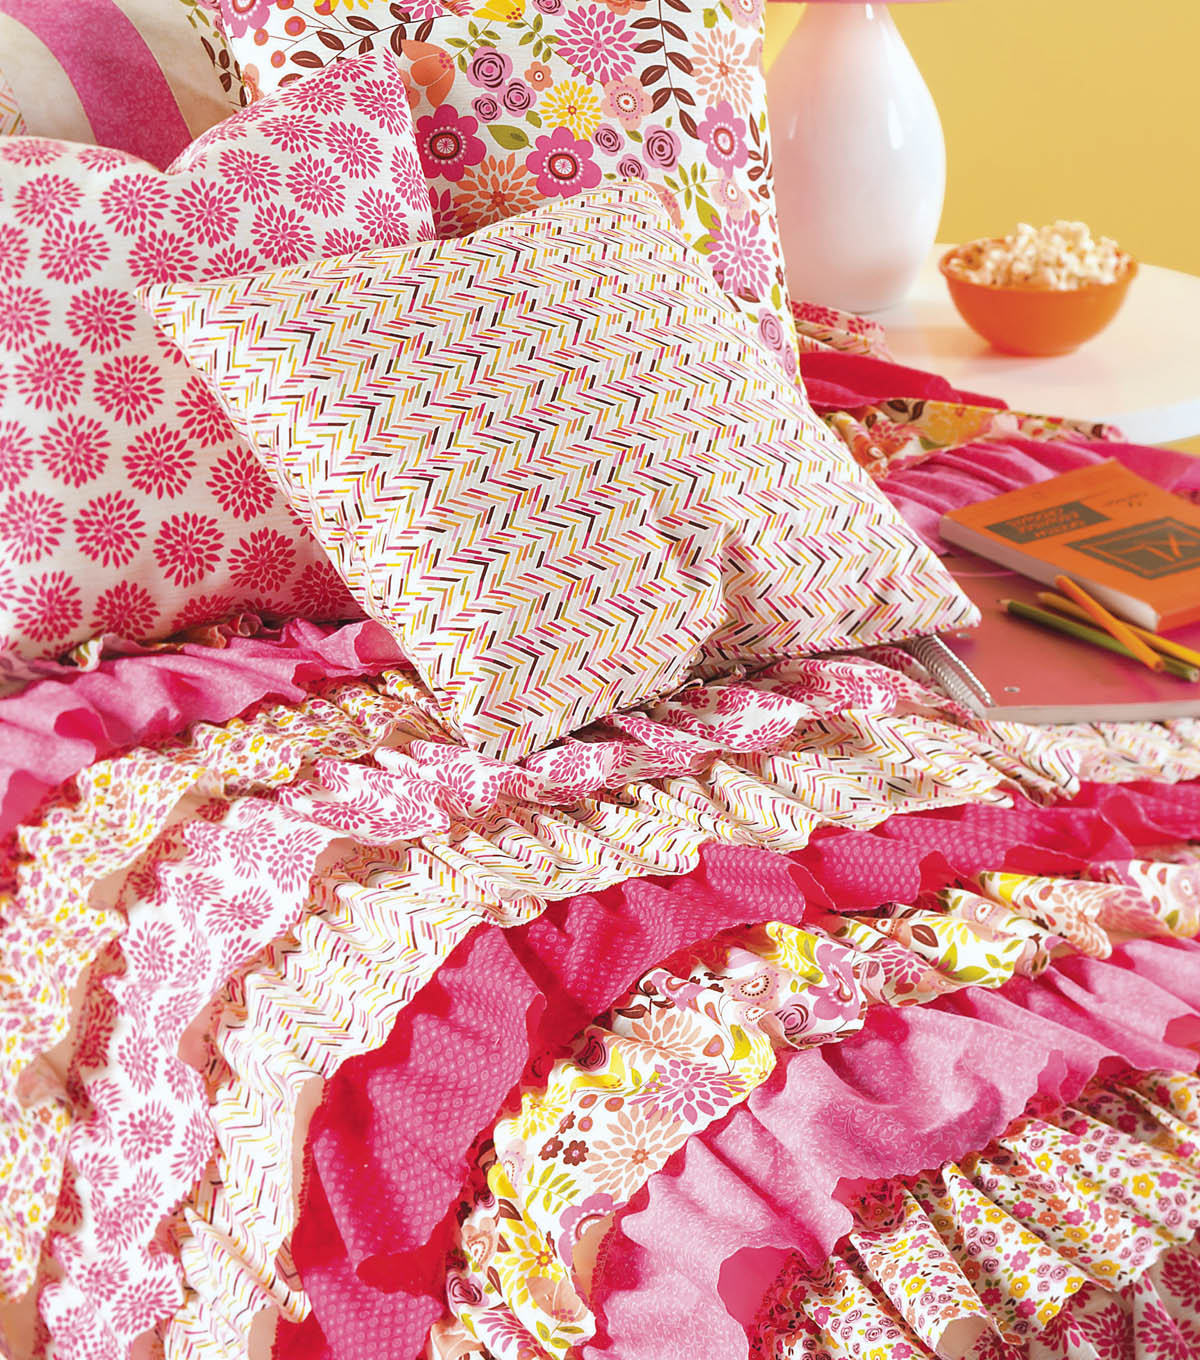 twin size duvet cover Twin Size Ruffled Duvet Cover | JOANN twin size duvet cover